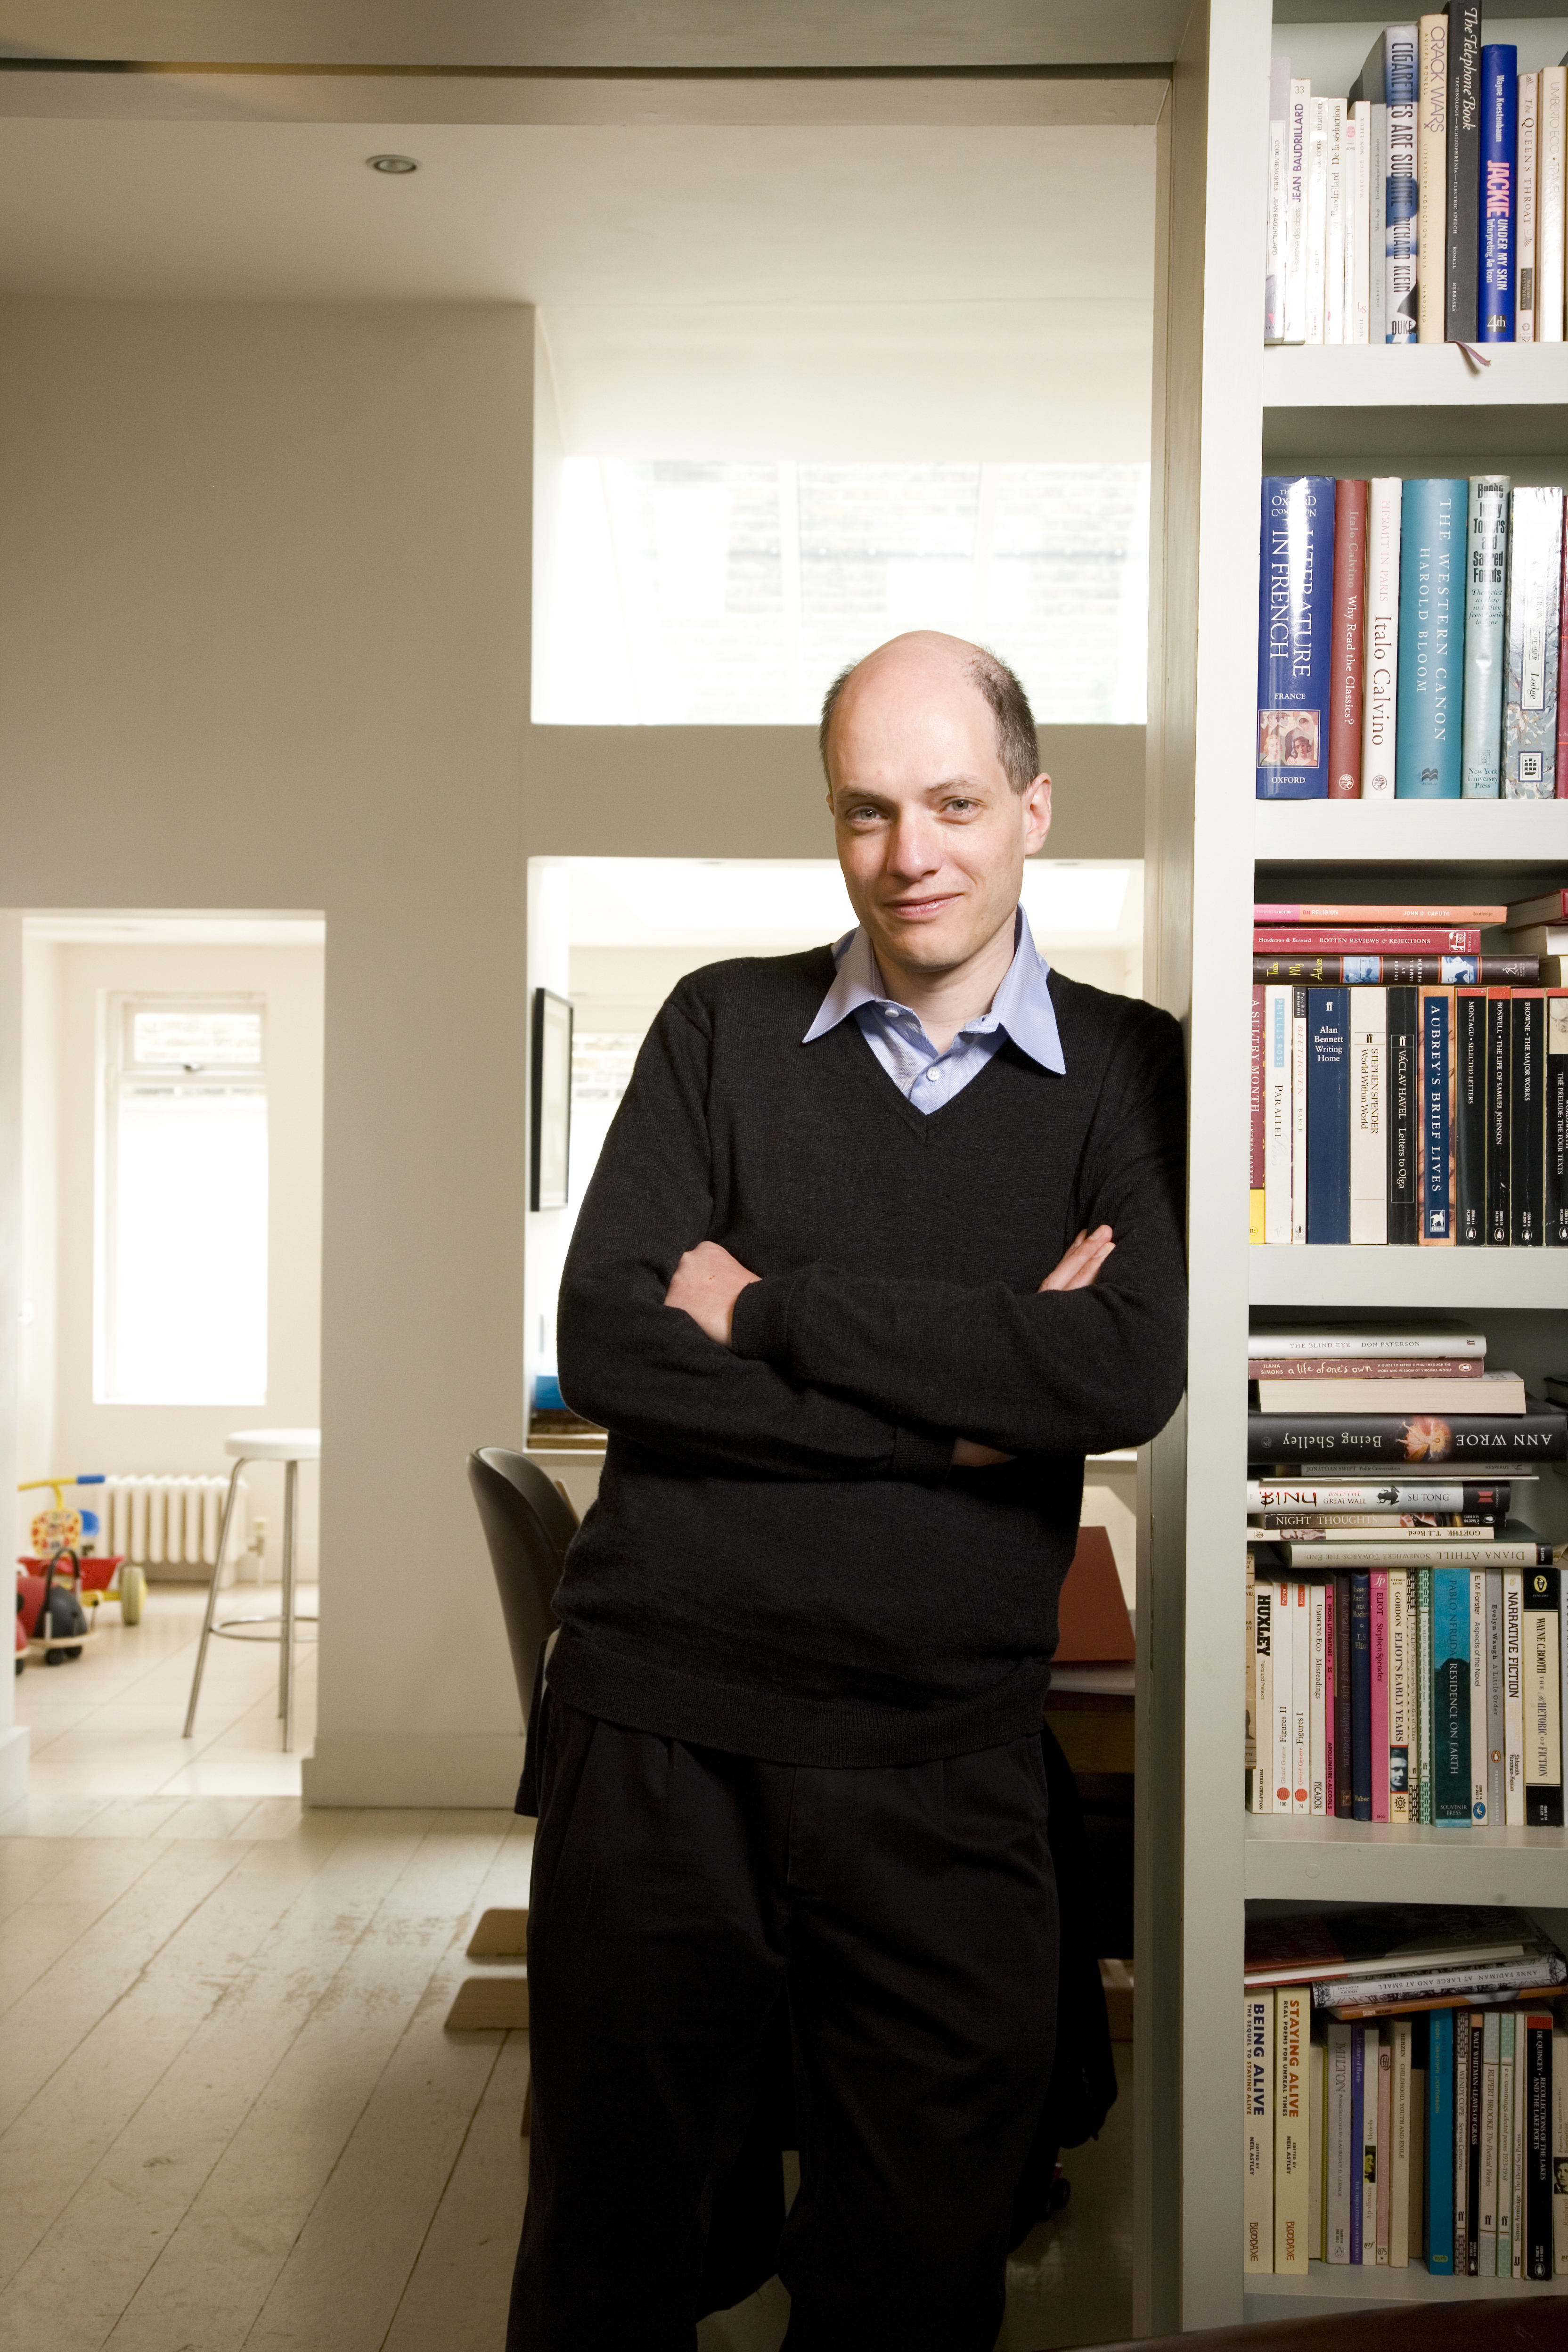 alain de botton humorists Home article alain de botton humorists essays and enquiry document alain de botton humorists essays and enquiry document posted on february 7, 2017 by admin the prose slice, osculate and secern by alaindebotton offers the referee a humourous, likewise as mortifying.